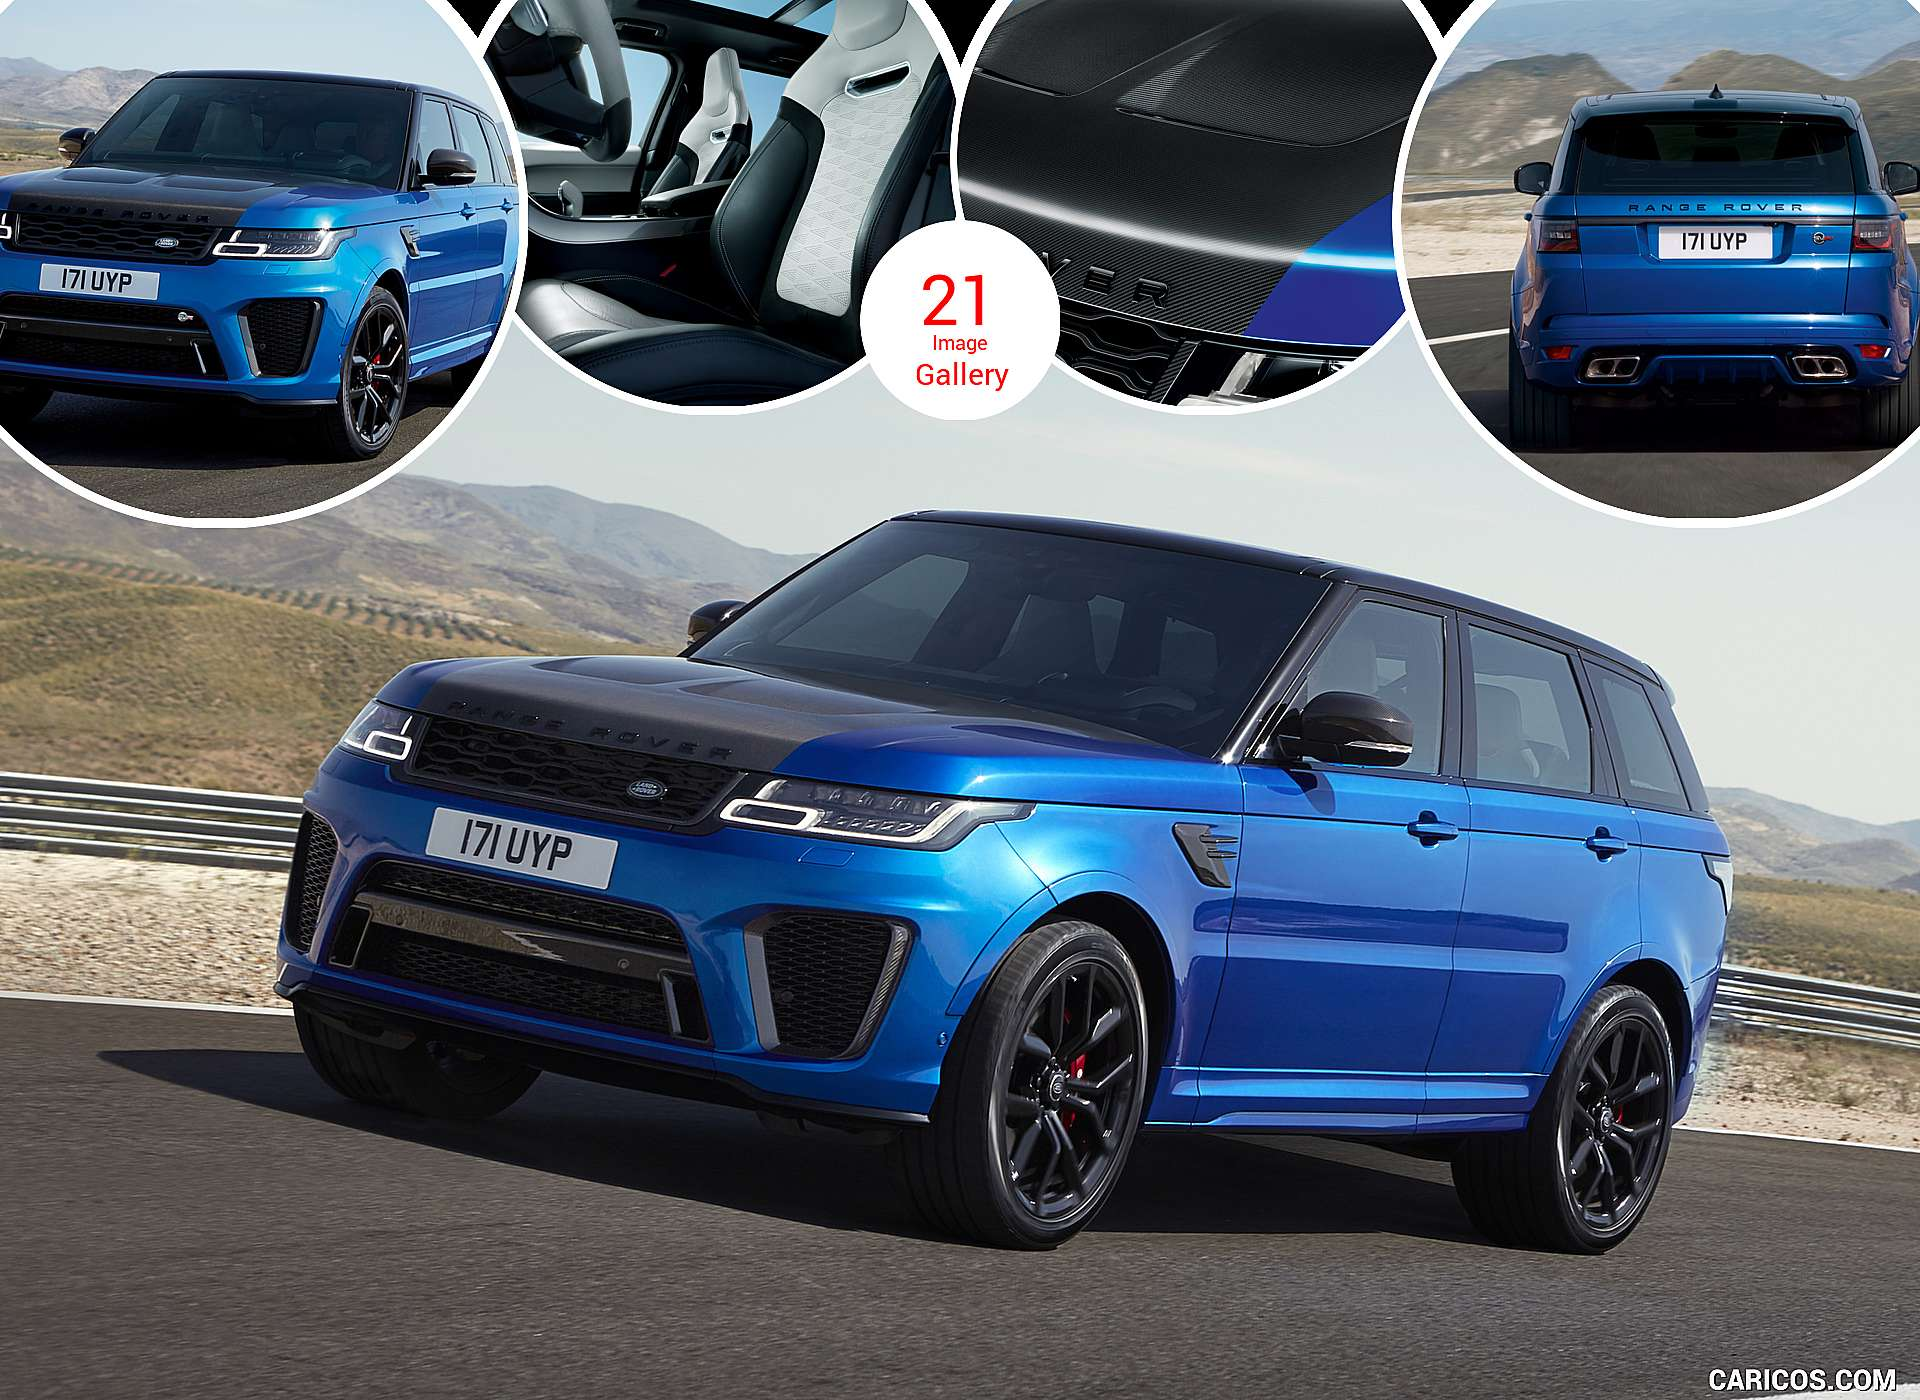 2018 range rover sport svr. Black Bedroom Furniture Sets. Home Design Ideas